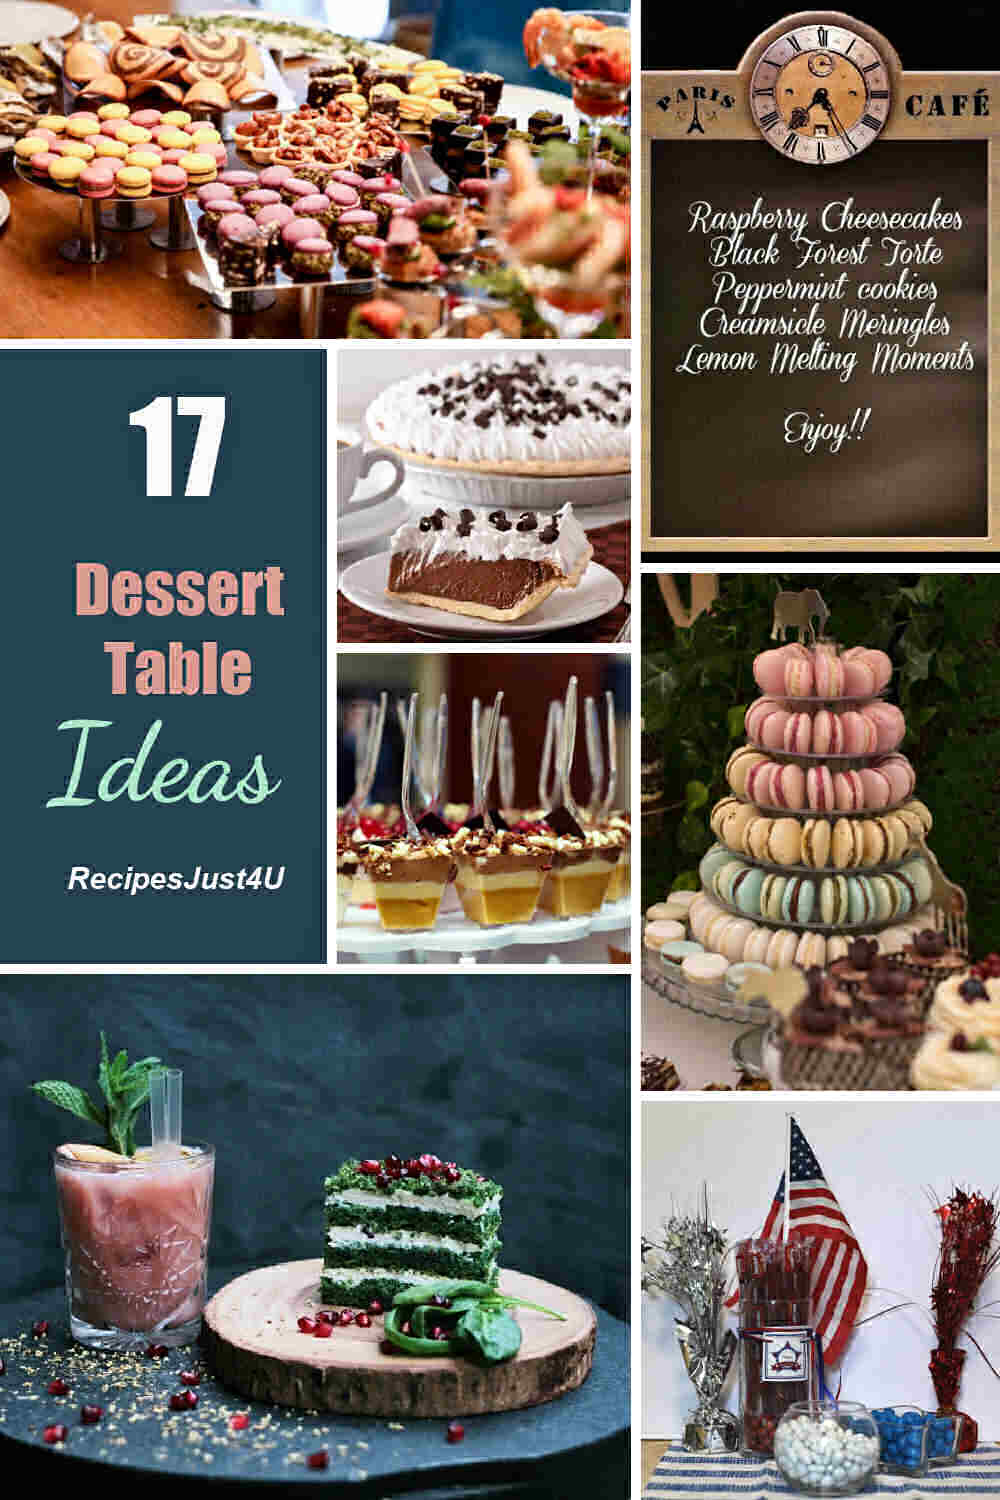 Party dessert ideas with words reading 17 dessert table ideas.